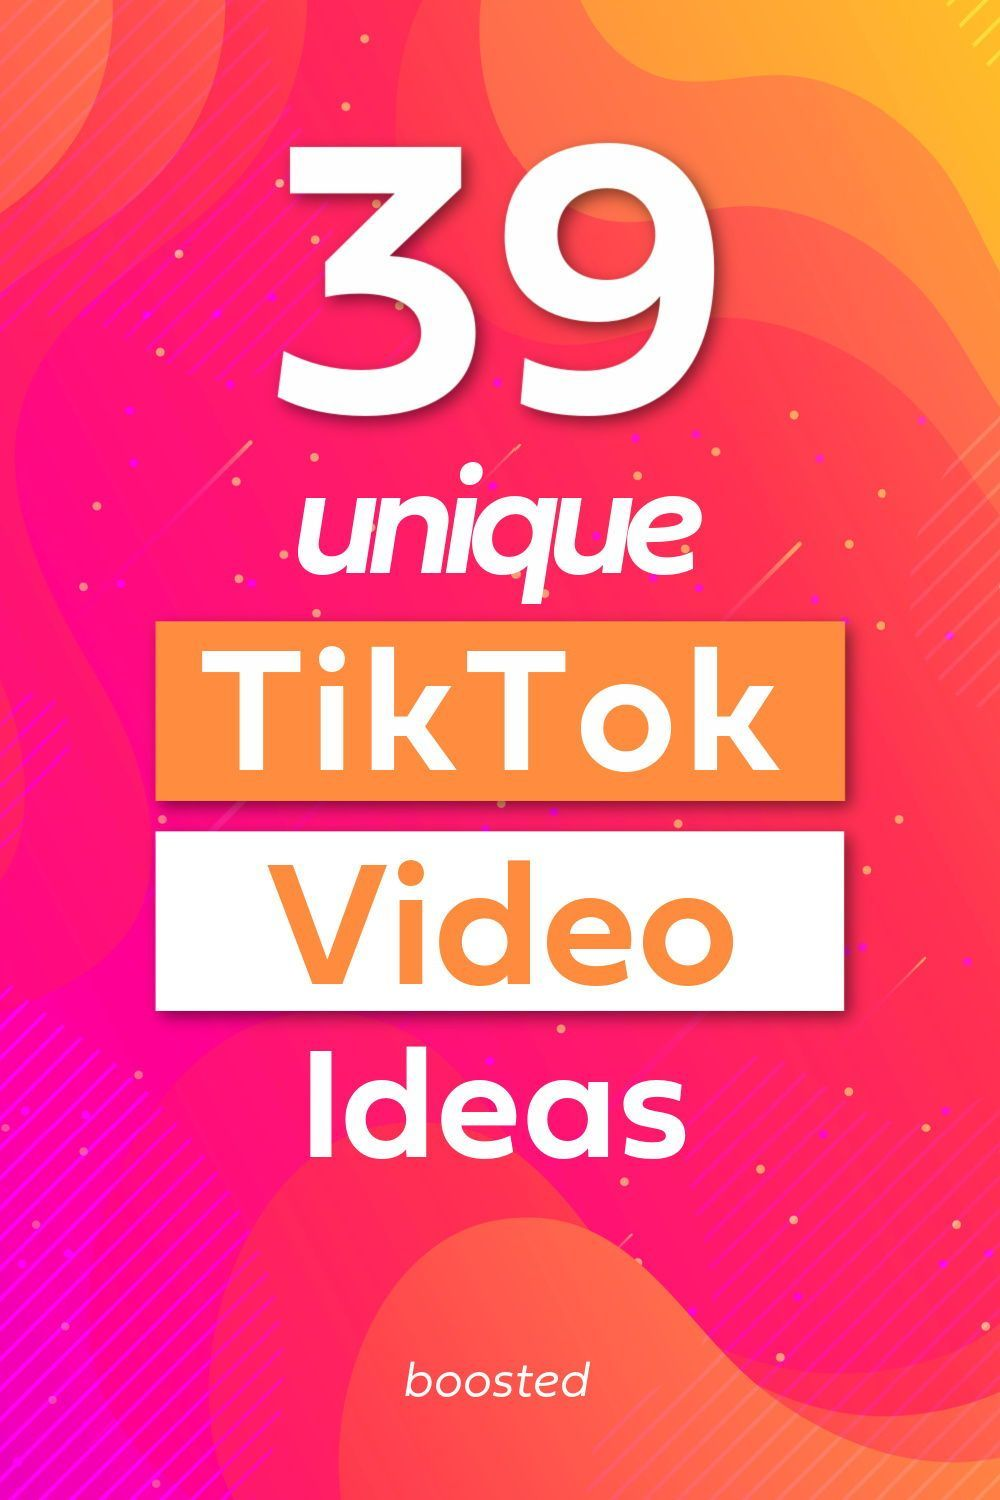 41 Tiktok Video Ideas For Small Businesses Boosted Social Media Marketing Business Marketing Strategy Social Media Business Marketing Plan